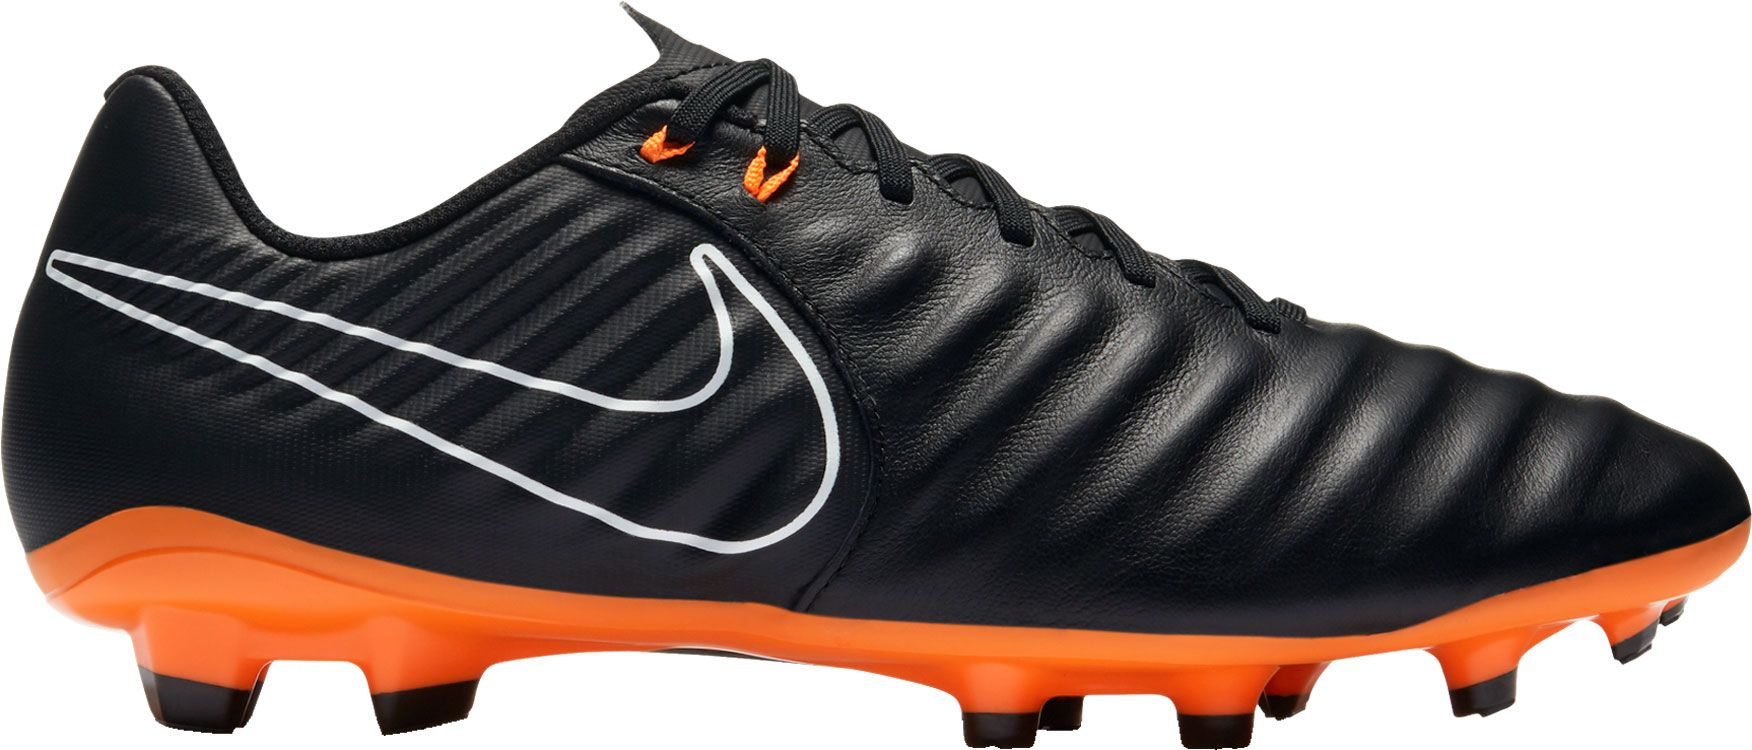 81cd6a6edc ... fast Nike Tiempo Legend 7 Academy FG Soccer Cleats DICKS Sportin ...